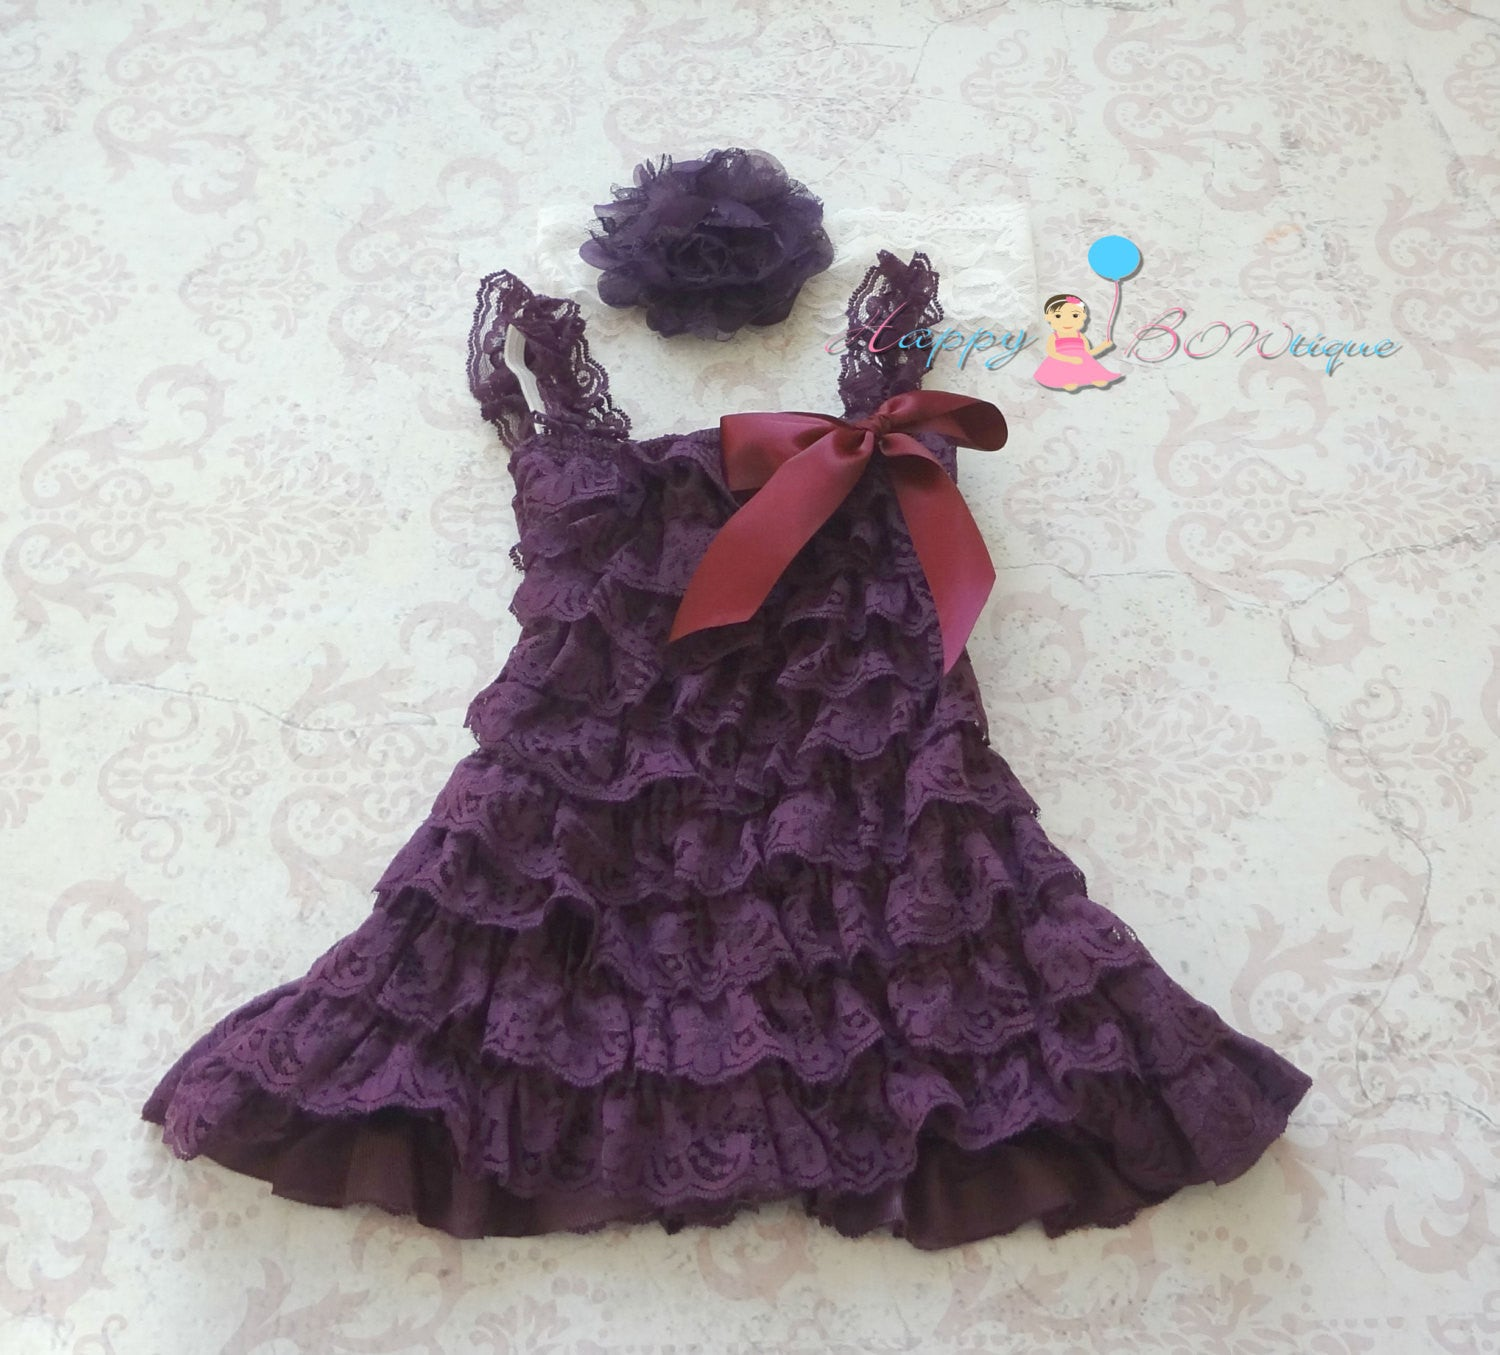 Girl's Petti Lace Dress/ Dark Purple Plum Girl's Lace Dress - Happy BOWtique - children's clothing, Baby Girl clothing